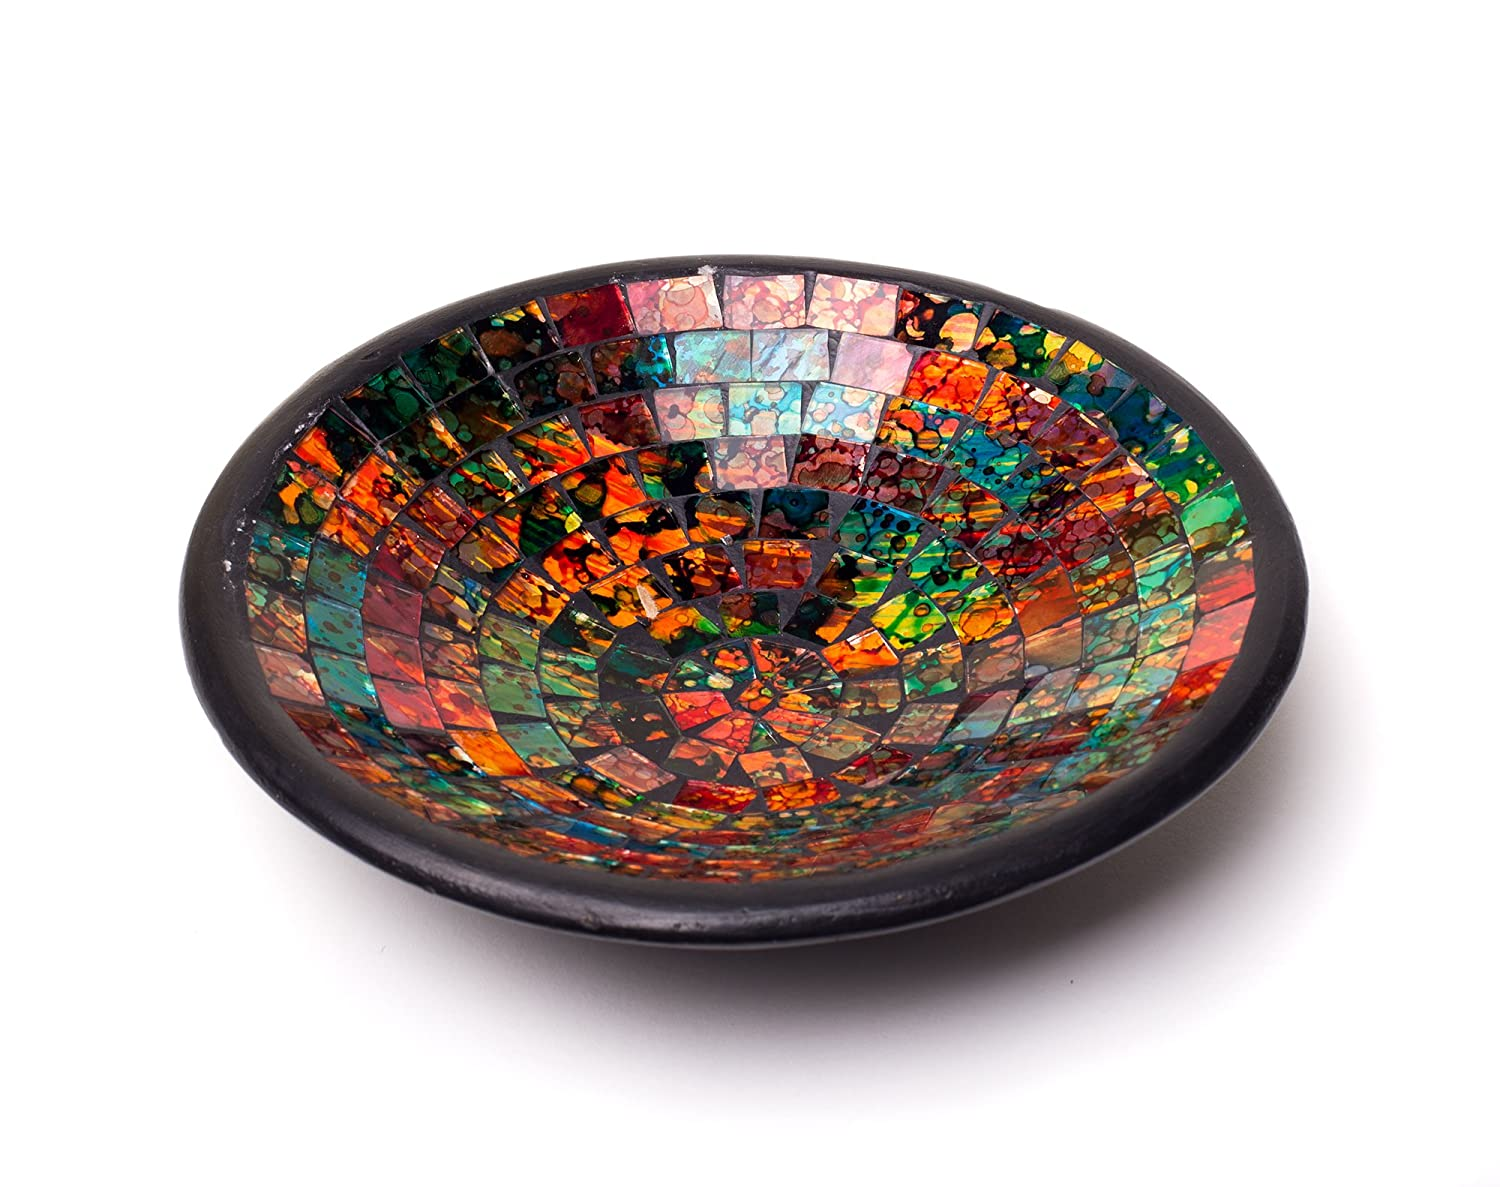 Glass Mosaic Square Accent Plate Platter Decorative Catch-All Tray Dish Centerpiece Bowl - Green, Orange, Blue Colors for Living Room, Bedroom, Hallway Console Side Table Decor (Round 8 Inch Orange)